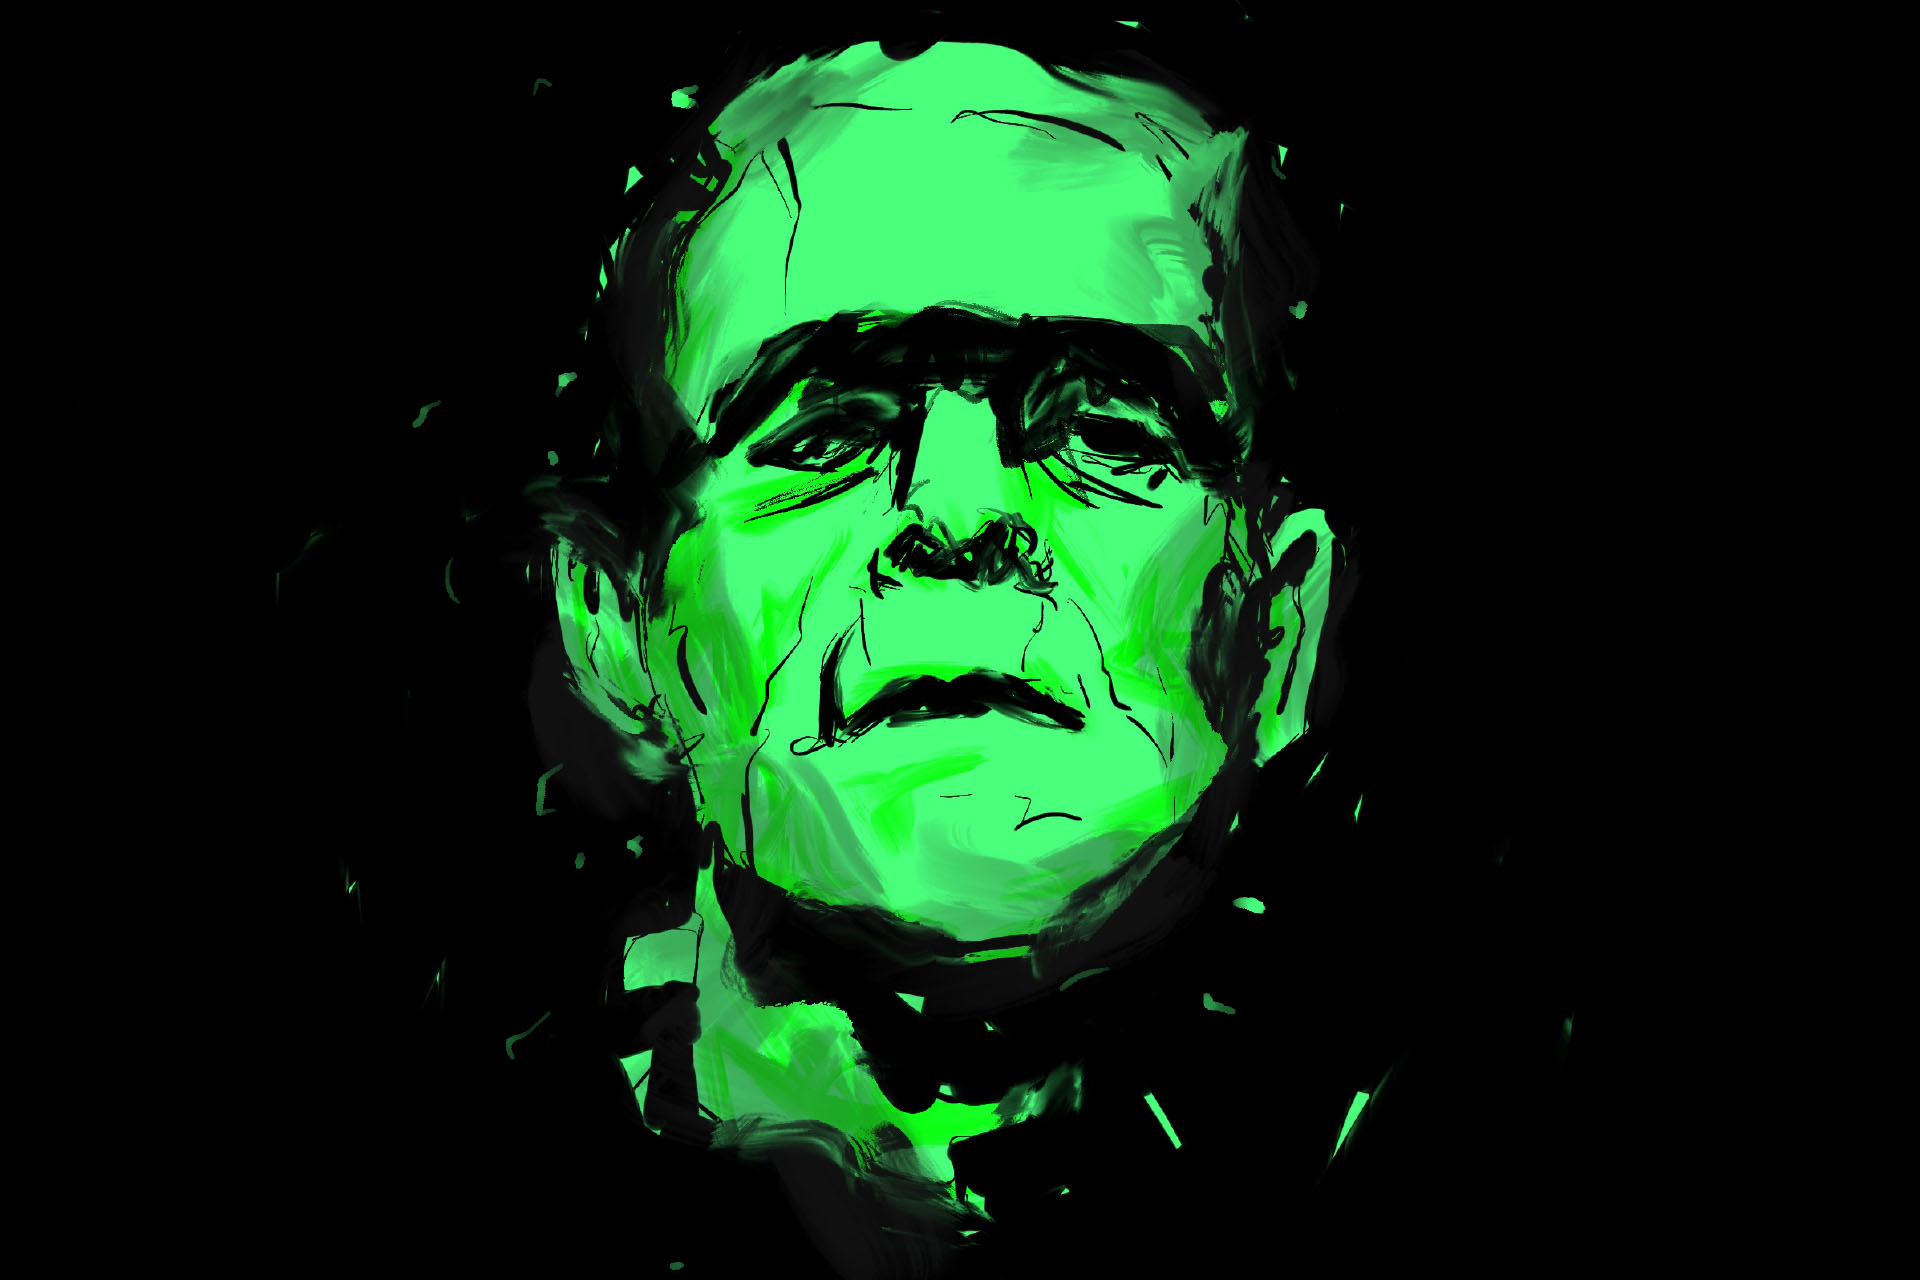 How human-centered designers prevent Frankenstein's creature